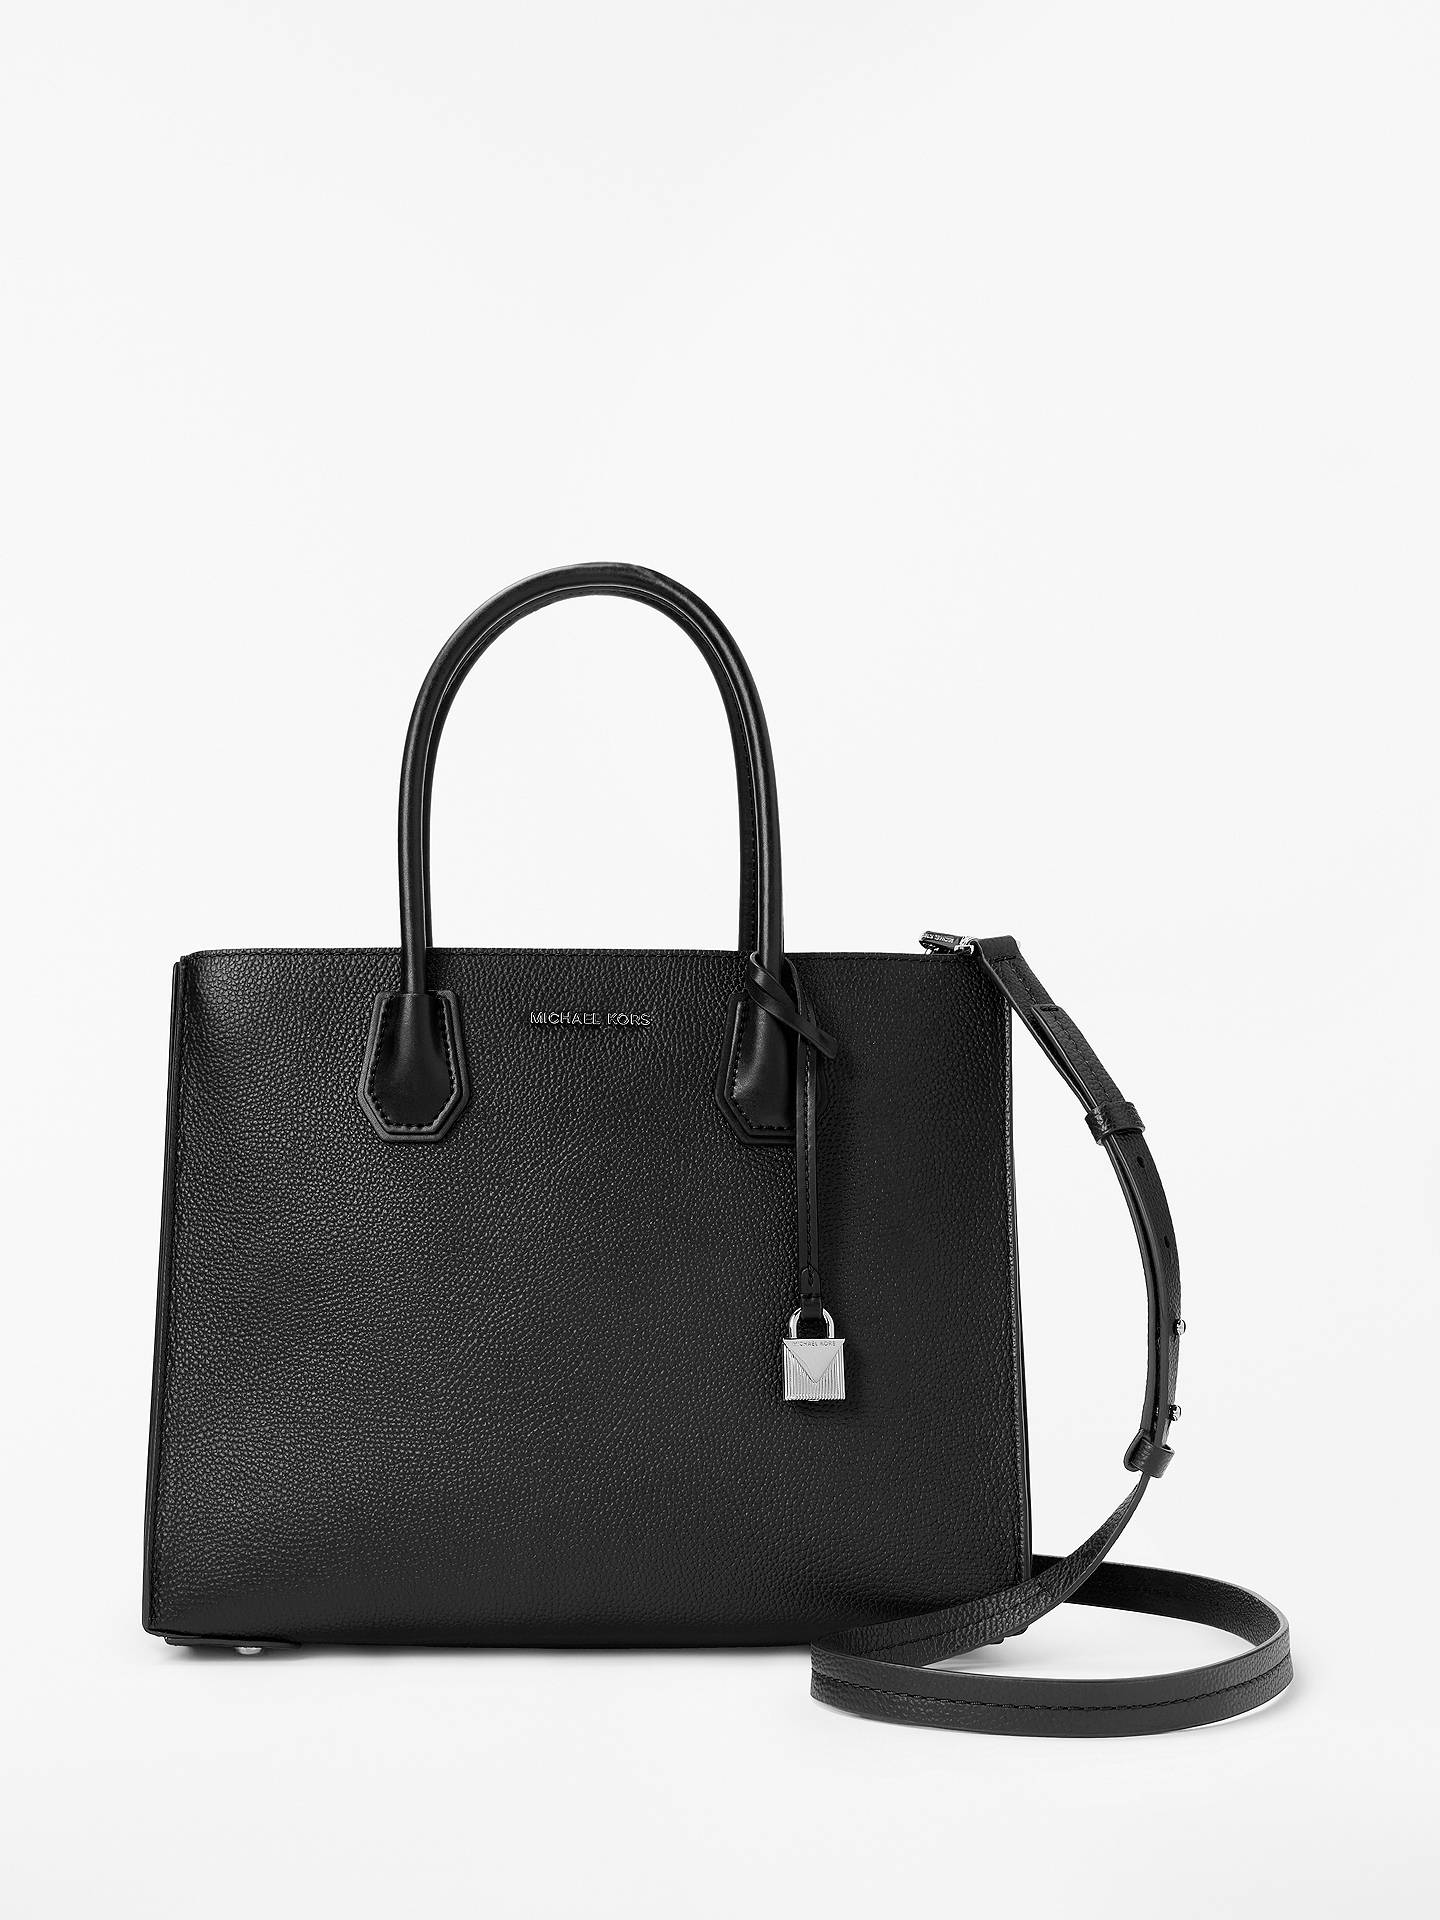 820c0bc1d39d3c Buy MICHAEL Michael Kors Mercer Accordion Large Leather Tote Bag, Black  Online at johnlewis.